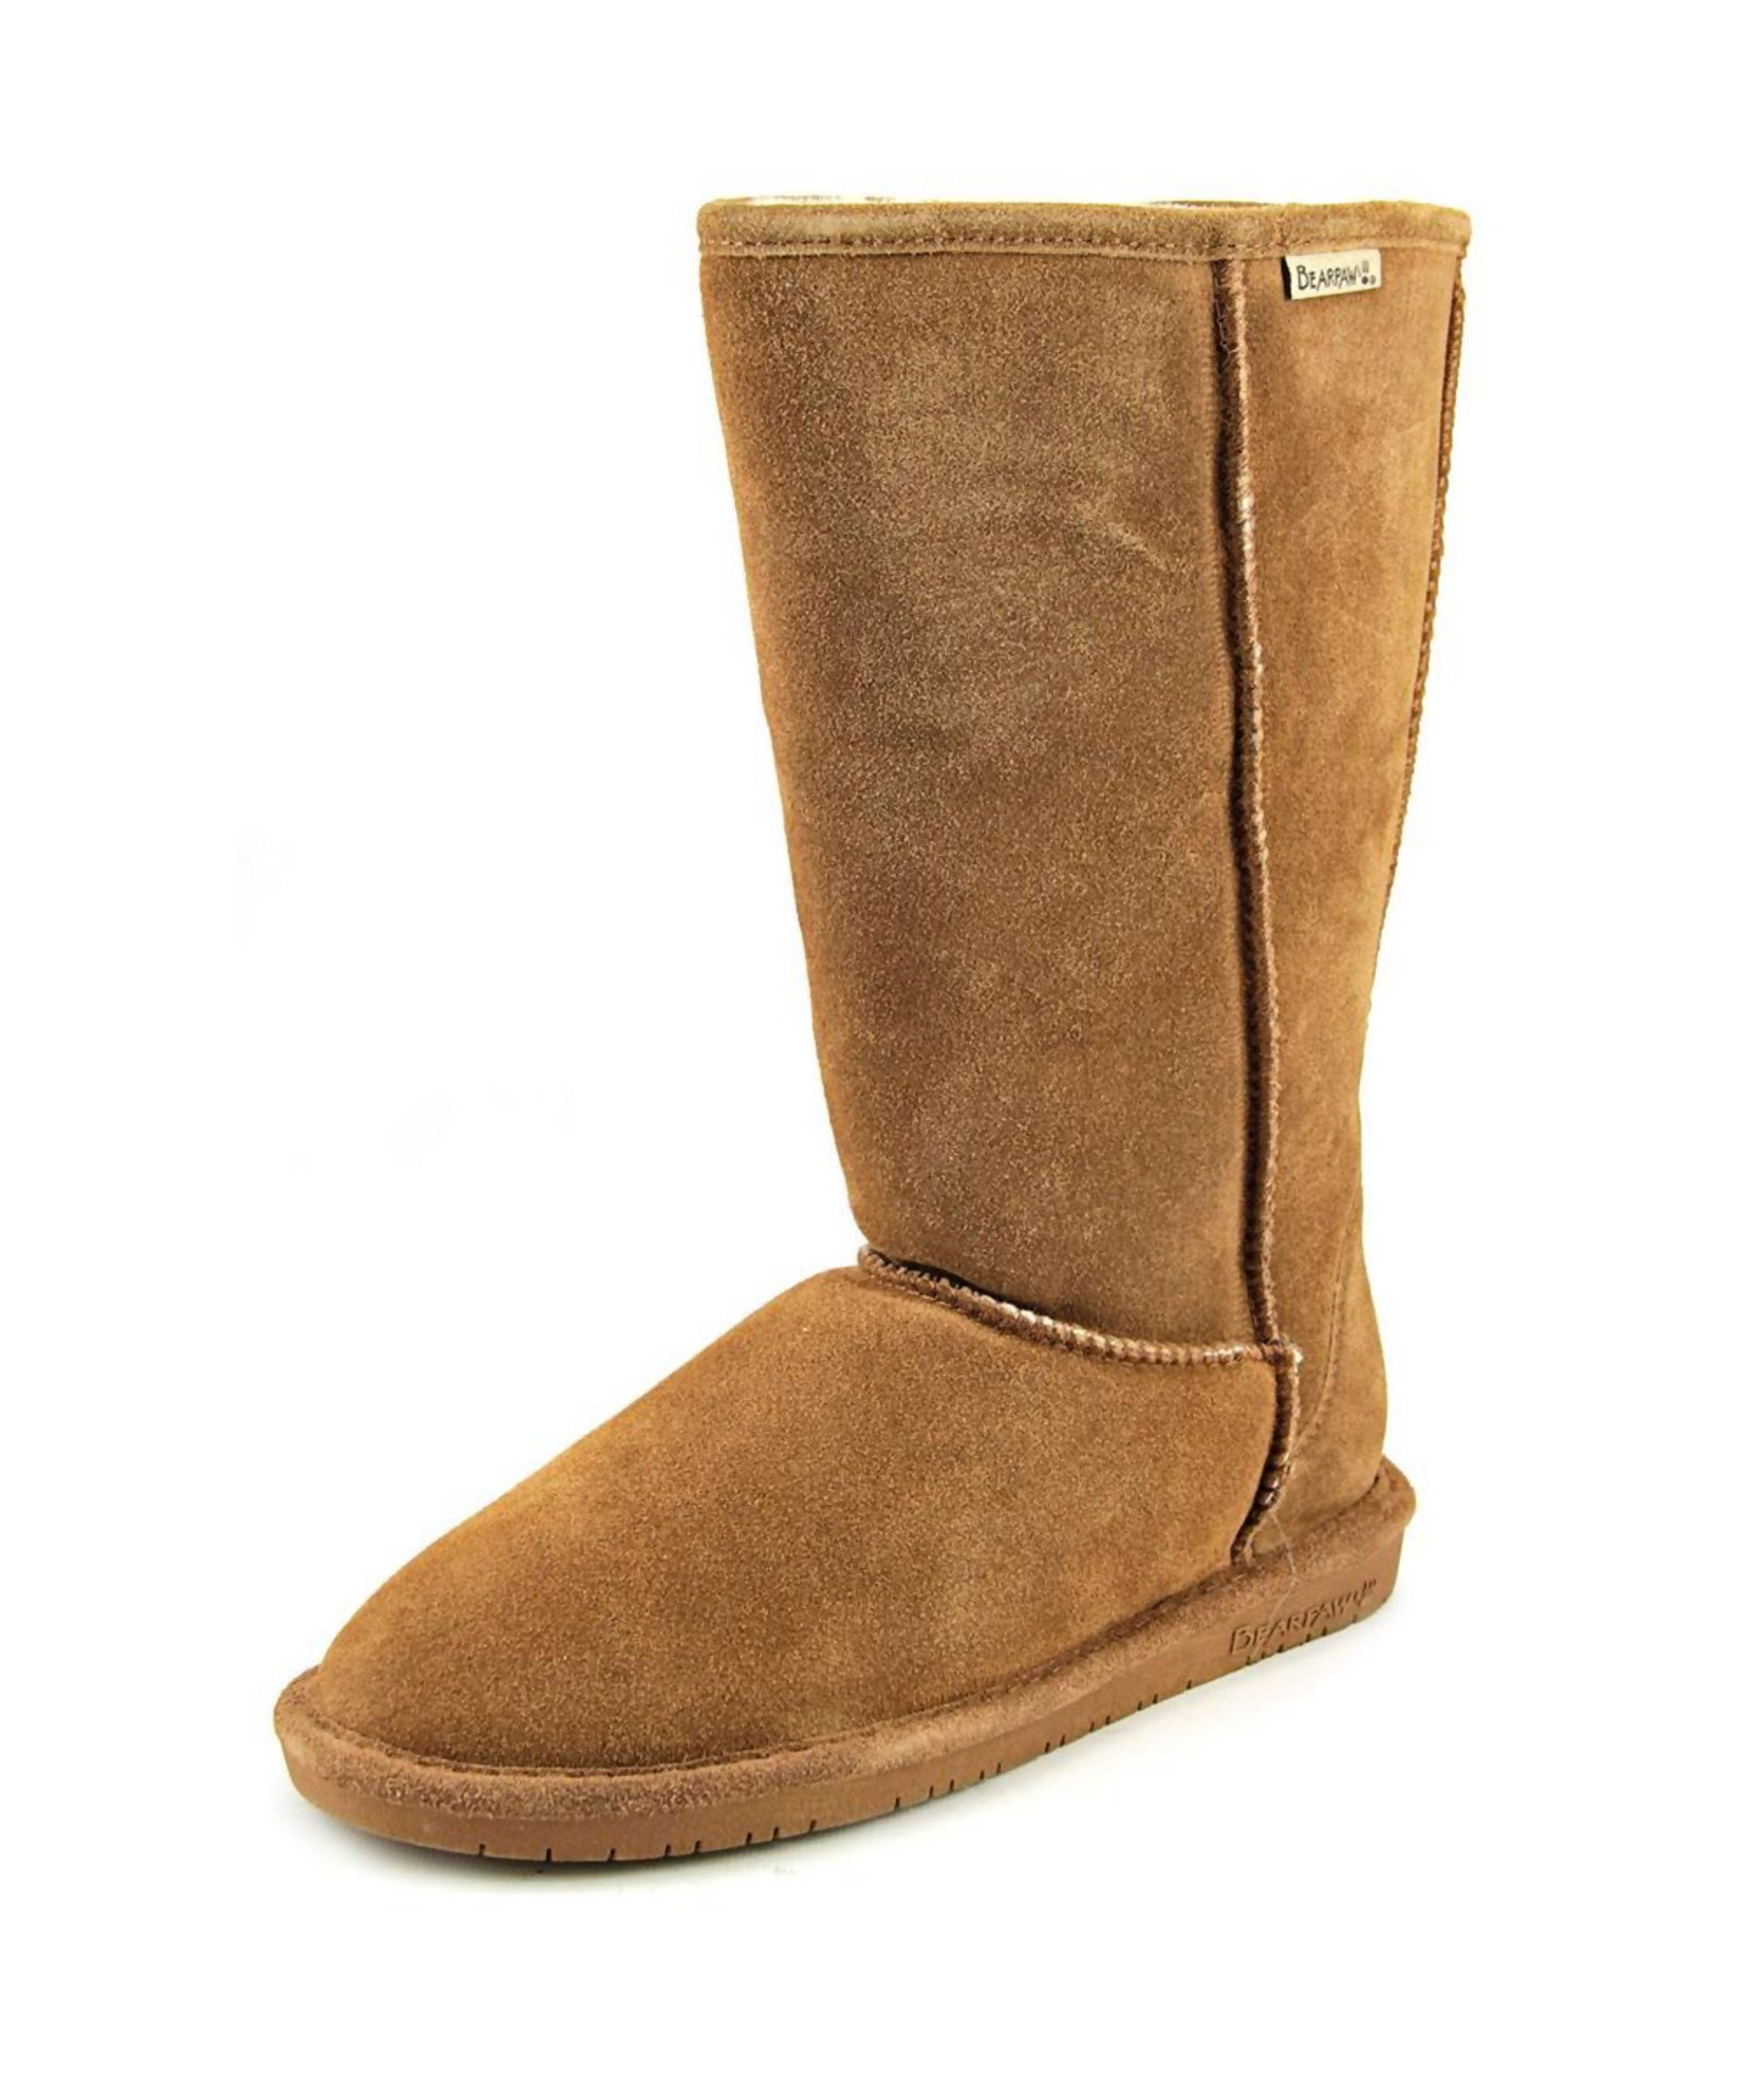 bearpaw toe suede winter boot in